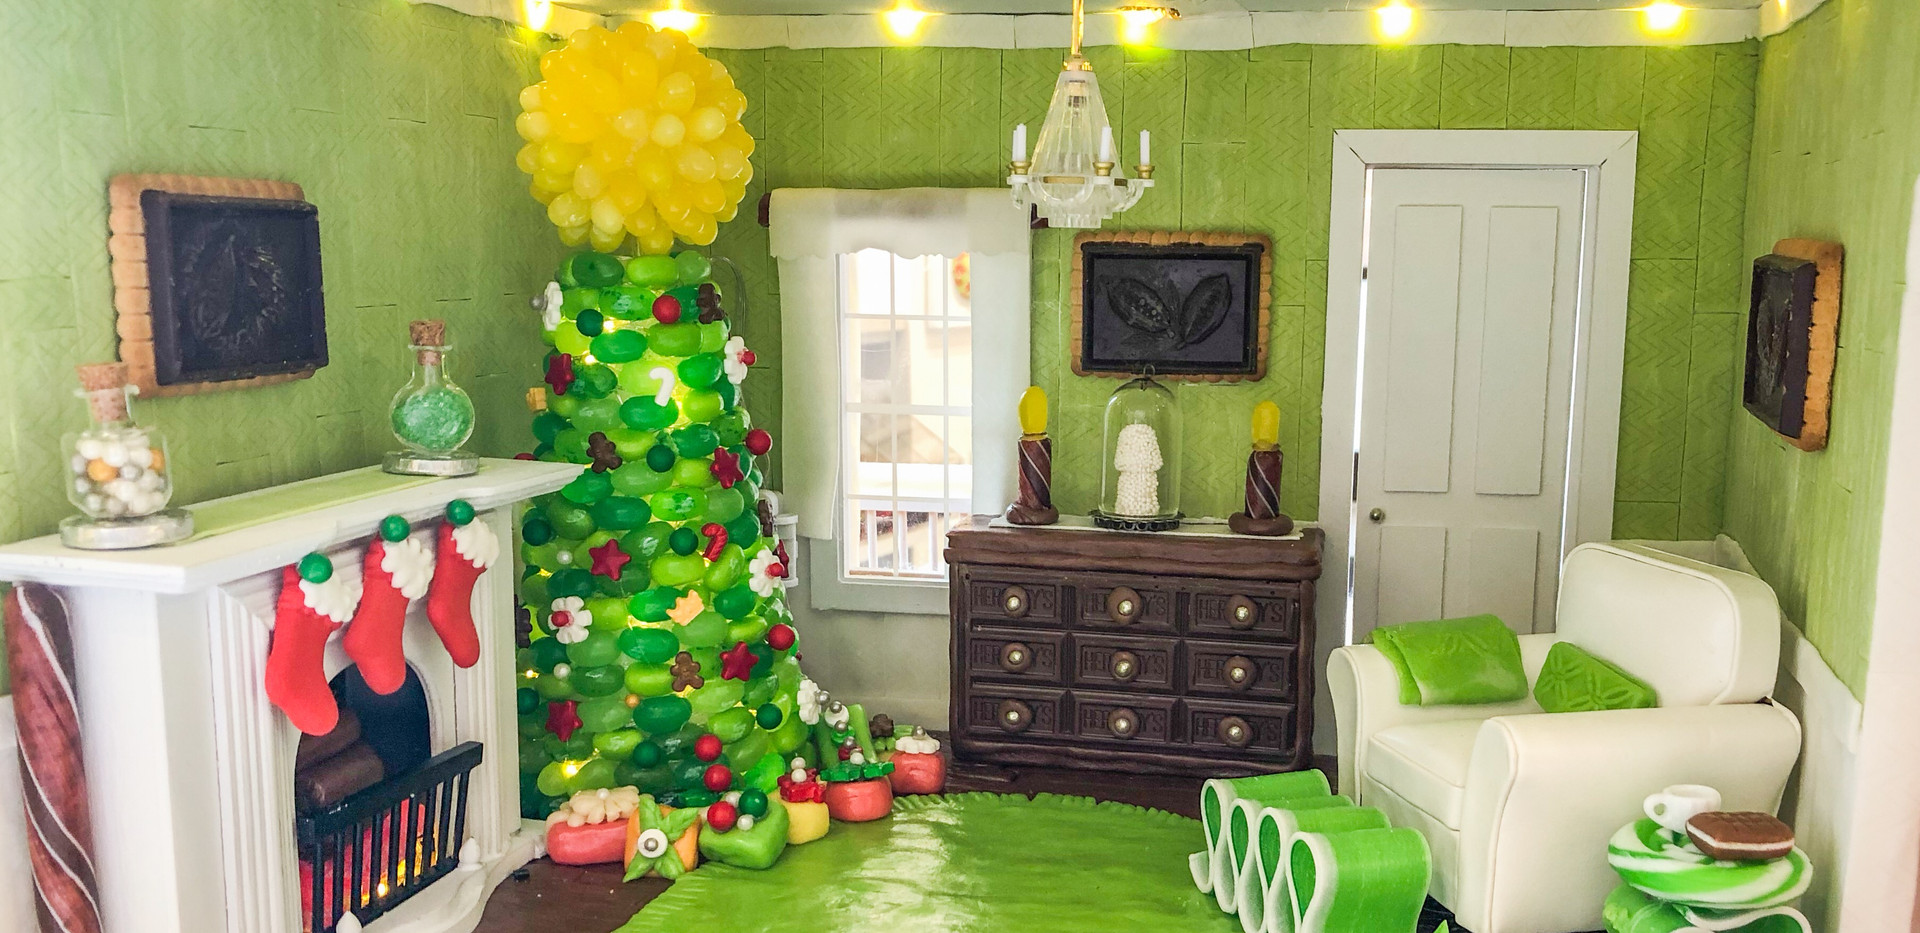 Living Room - Toosie Roll Floor, Gum Walls, Jelly Belly Tree, Chocolate Buffet